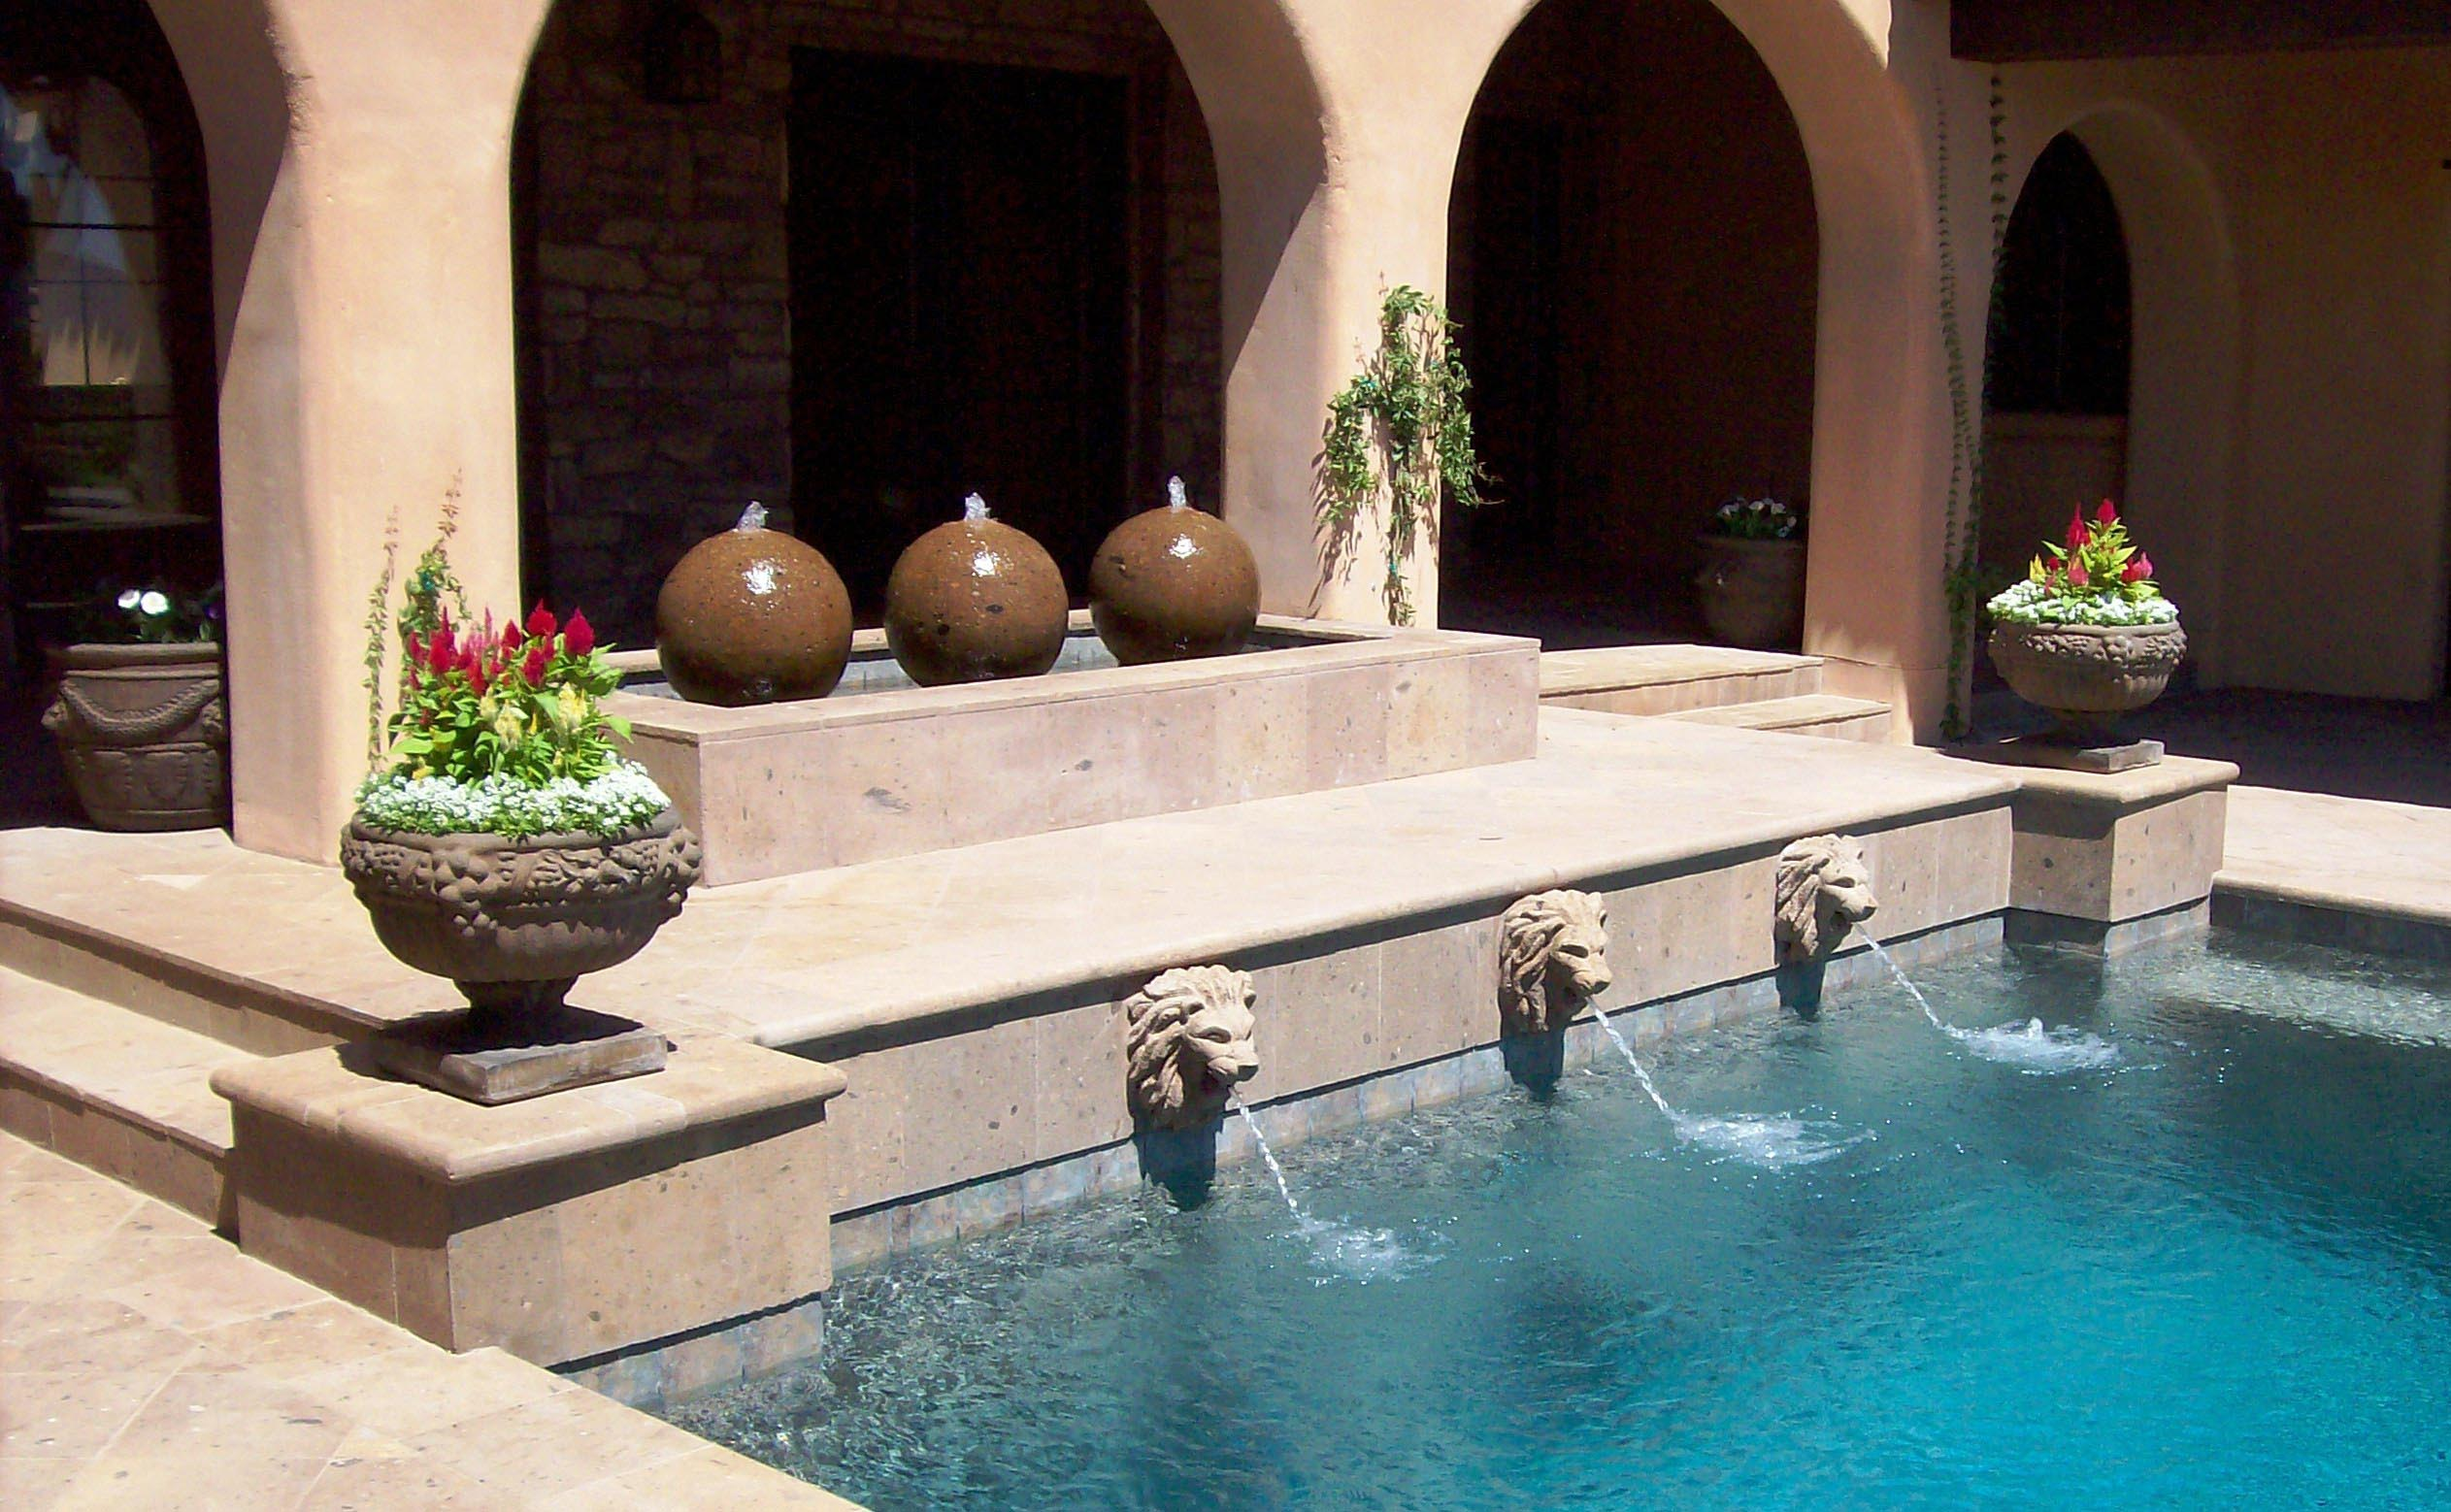 Swimming pool fountain heads fountain design ideas for Garden pool fountains